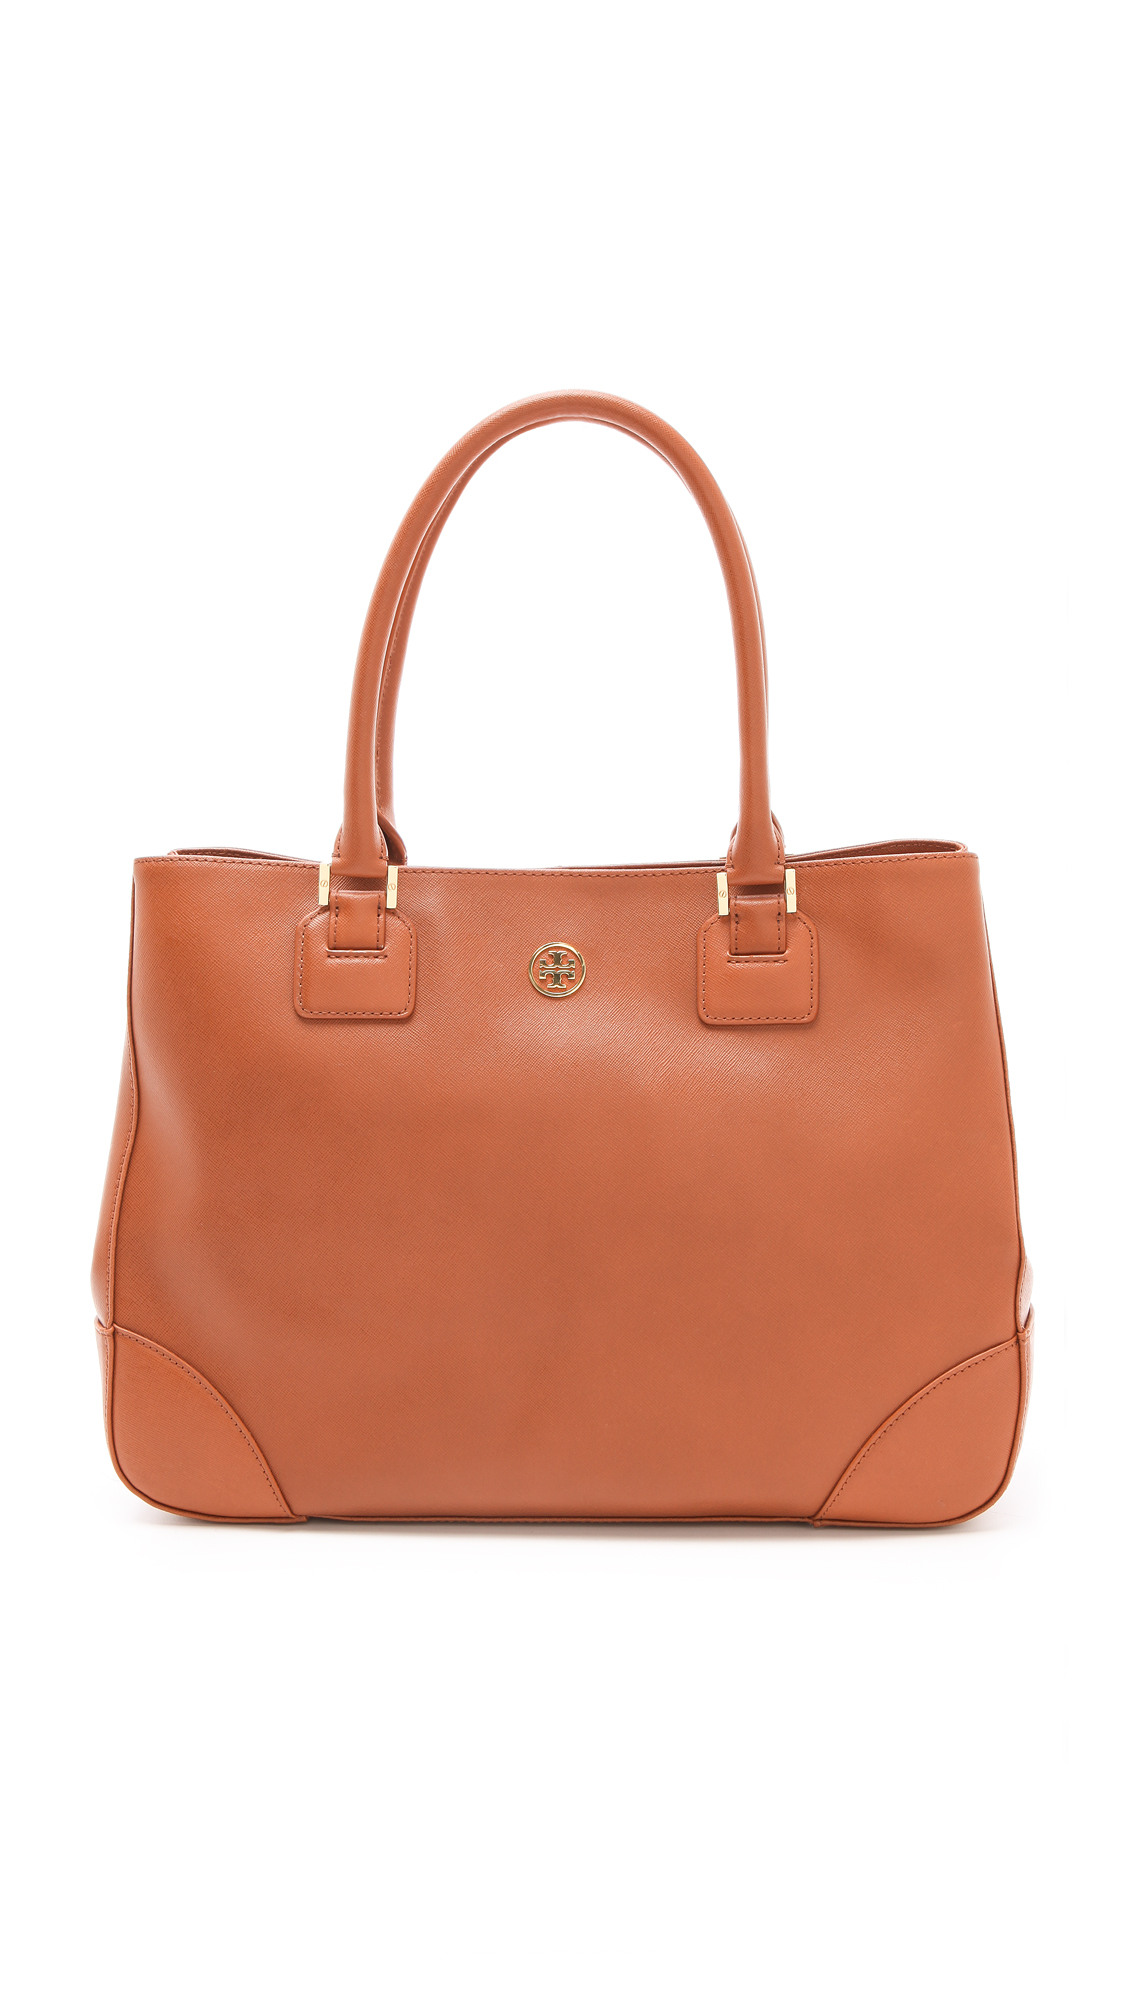 46a582355838 Lyst - Tory Burch Robinson East West Tote in Brown